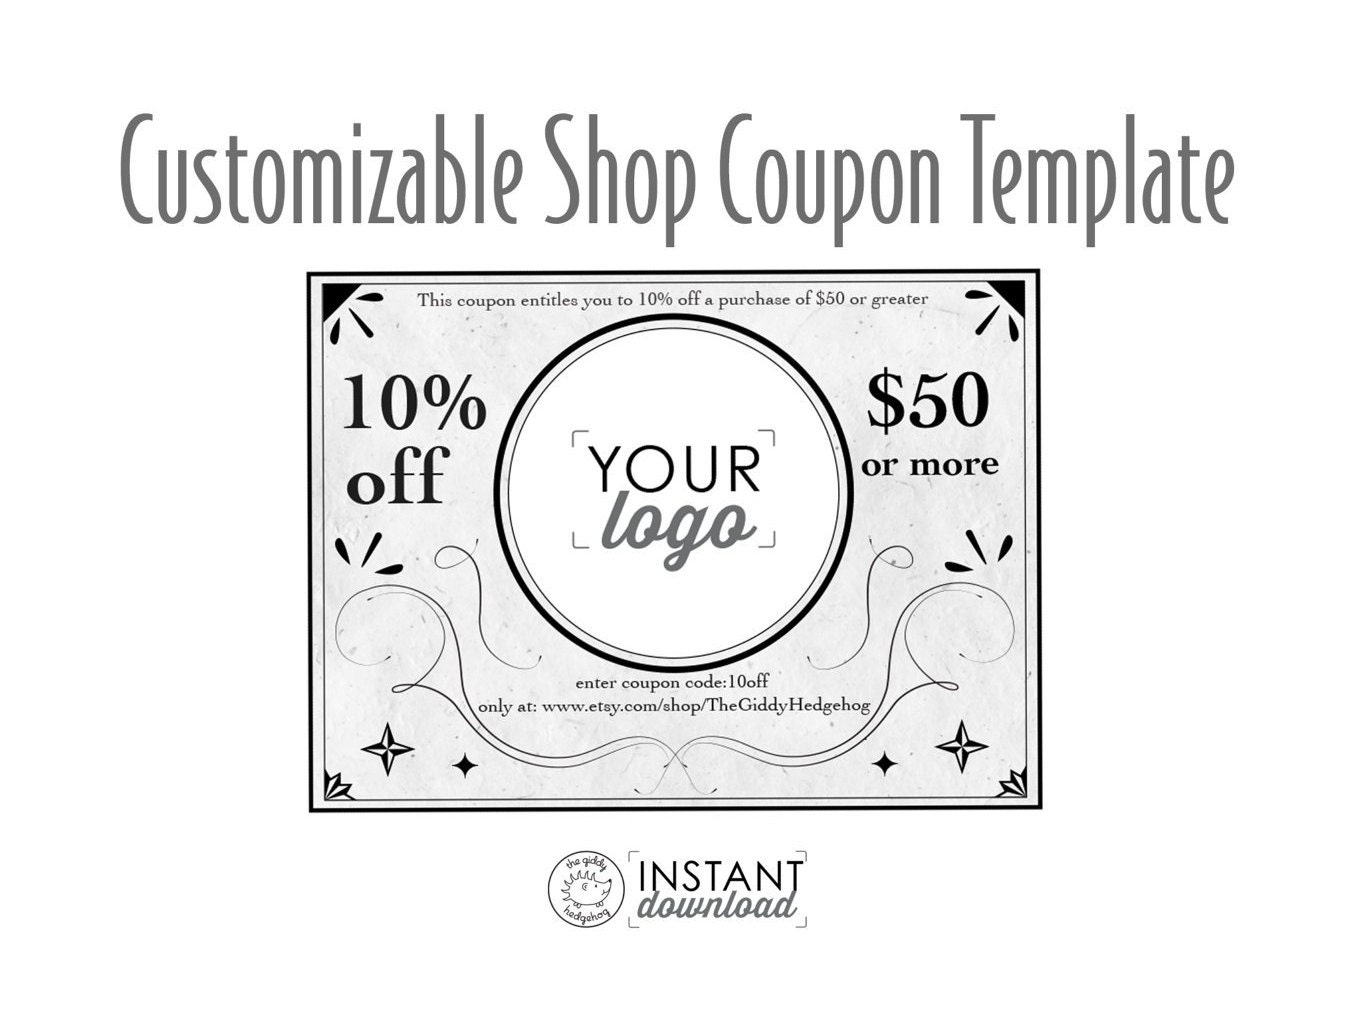 vintage style printable coupon personal coupon coupon template coupon code editable coupon. Black Bedroom Furniture Sets. Home Design Ideas